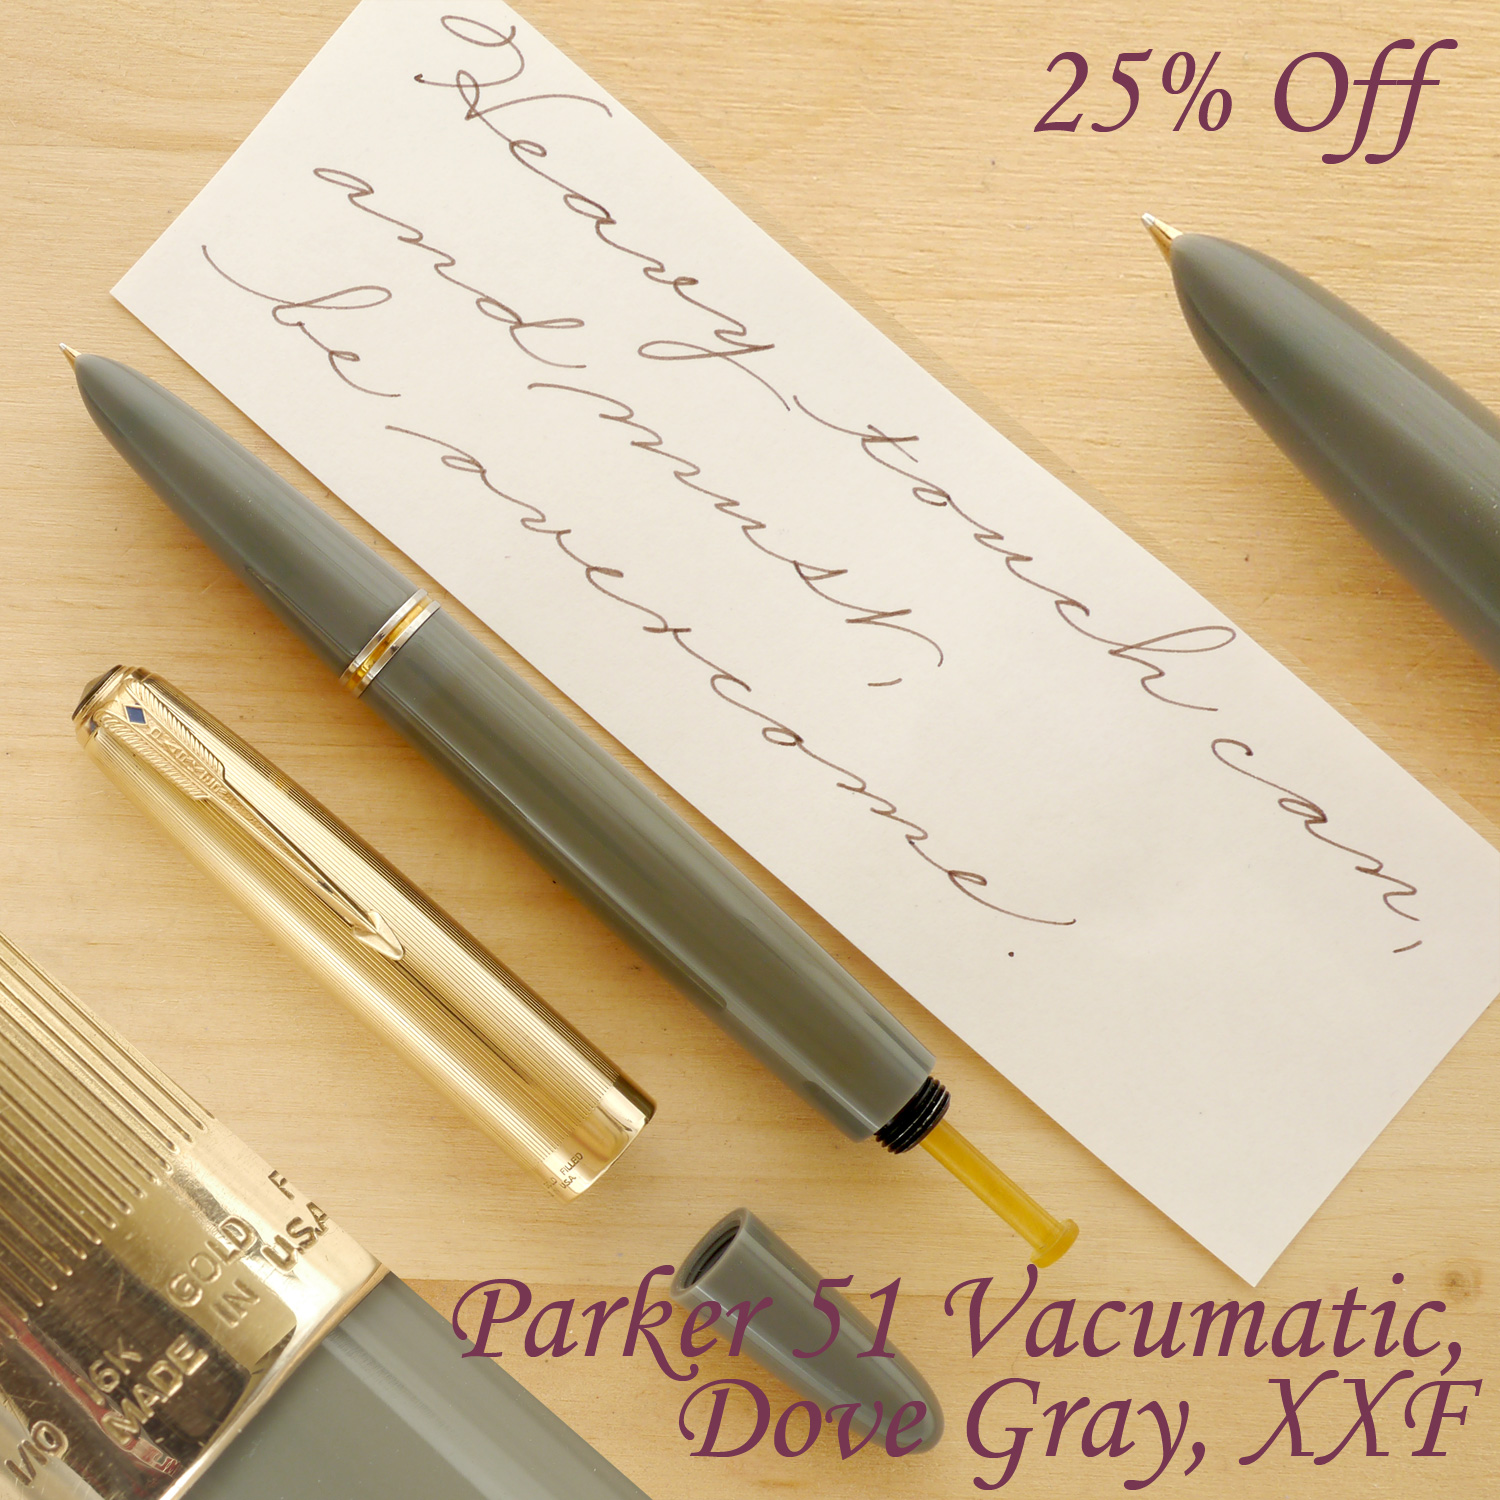 Parker 51 Vacumatic Fountain Pen, Dove Gray, XXF, uncapped, with the blind cap off, showing the plunger